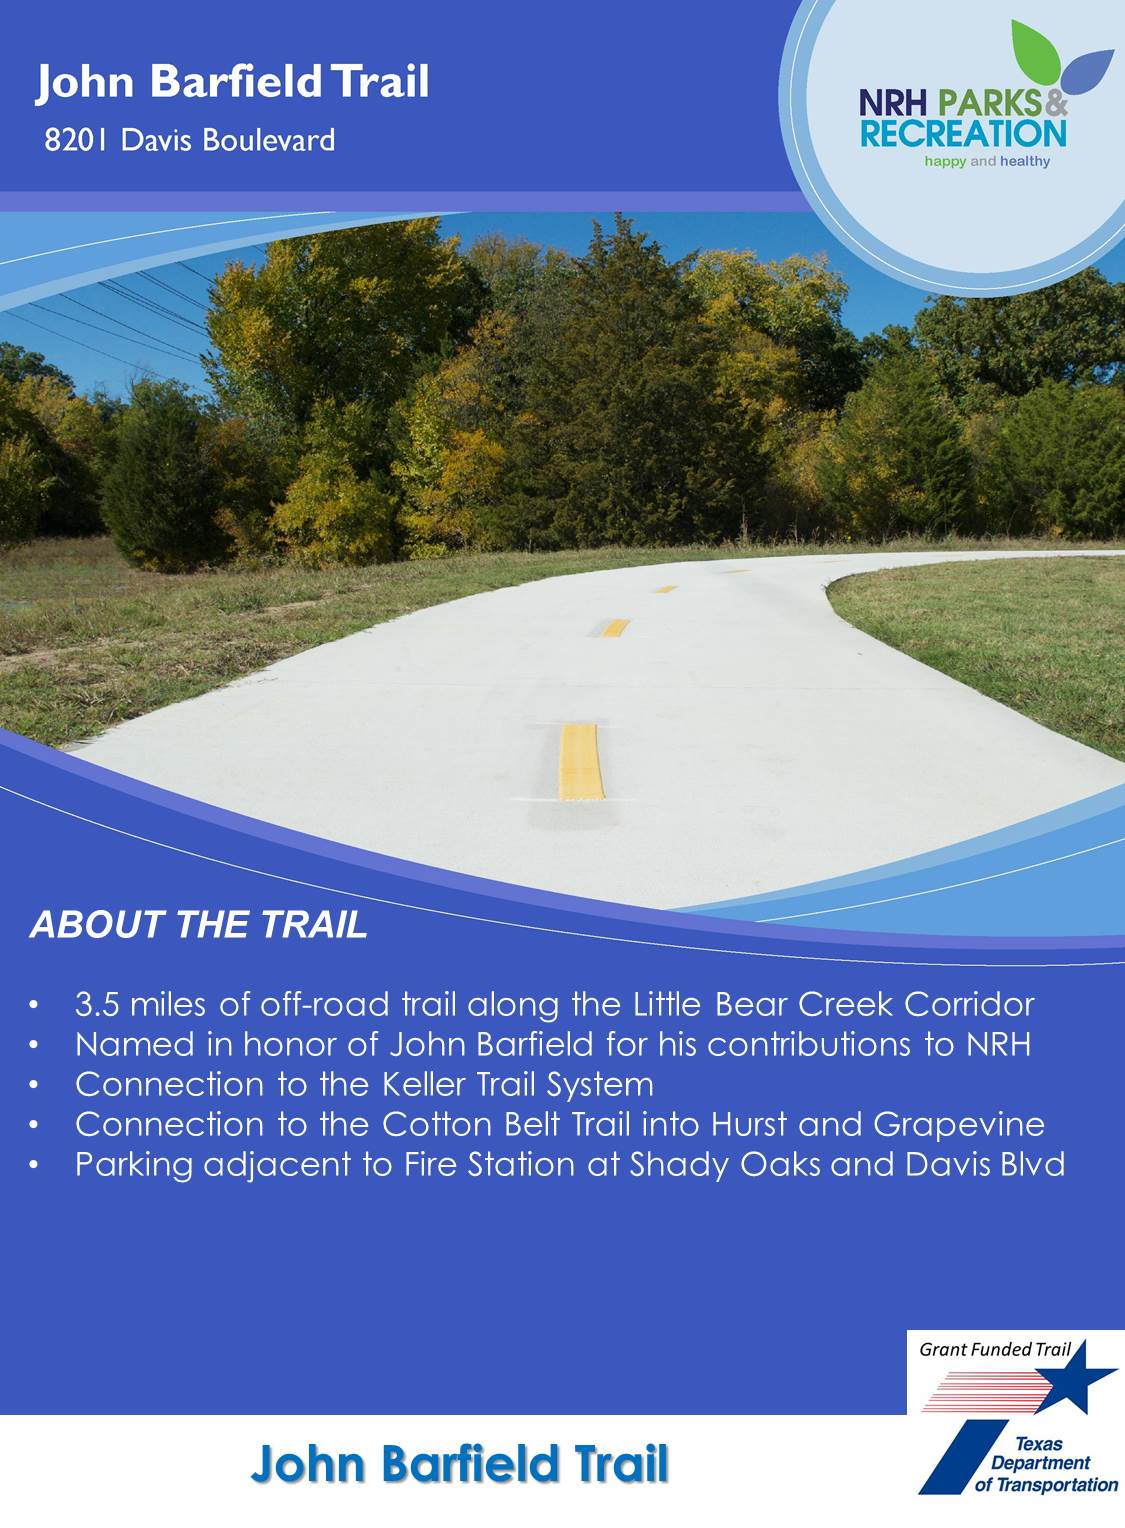 John Barfield Trail Fact Sheet.jpg